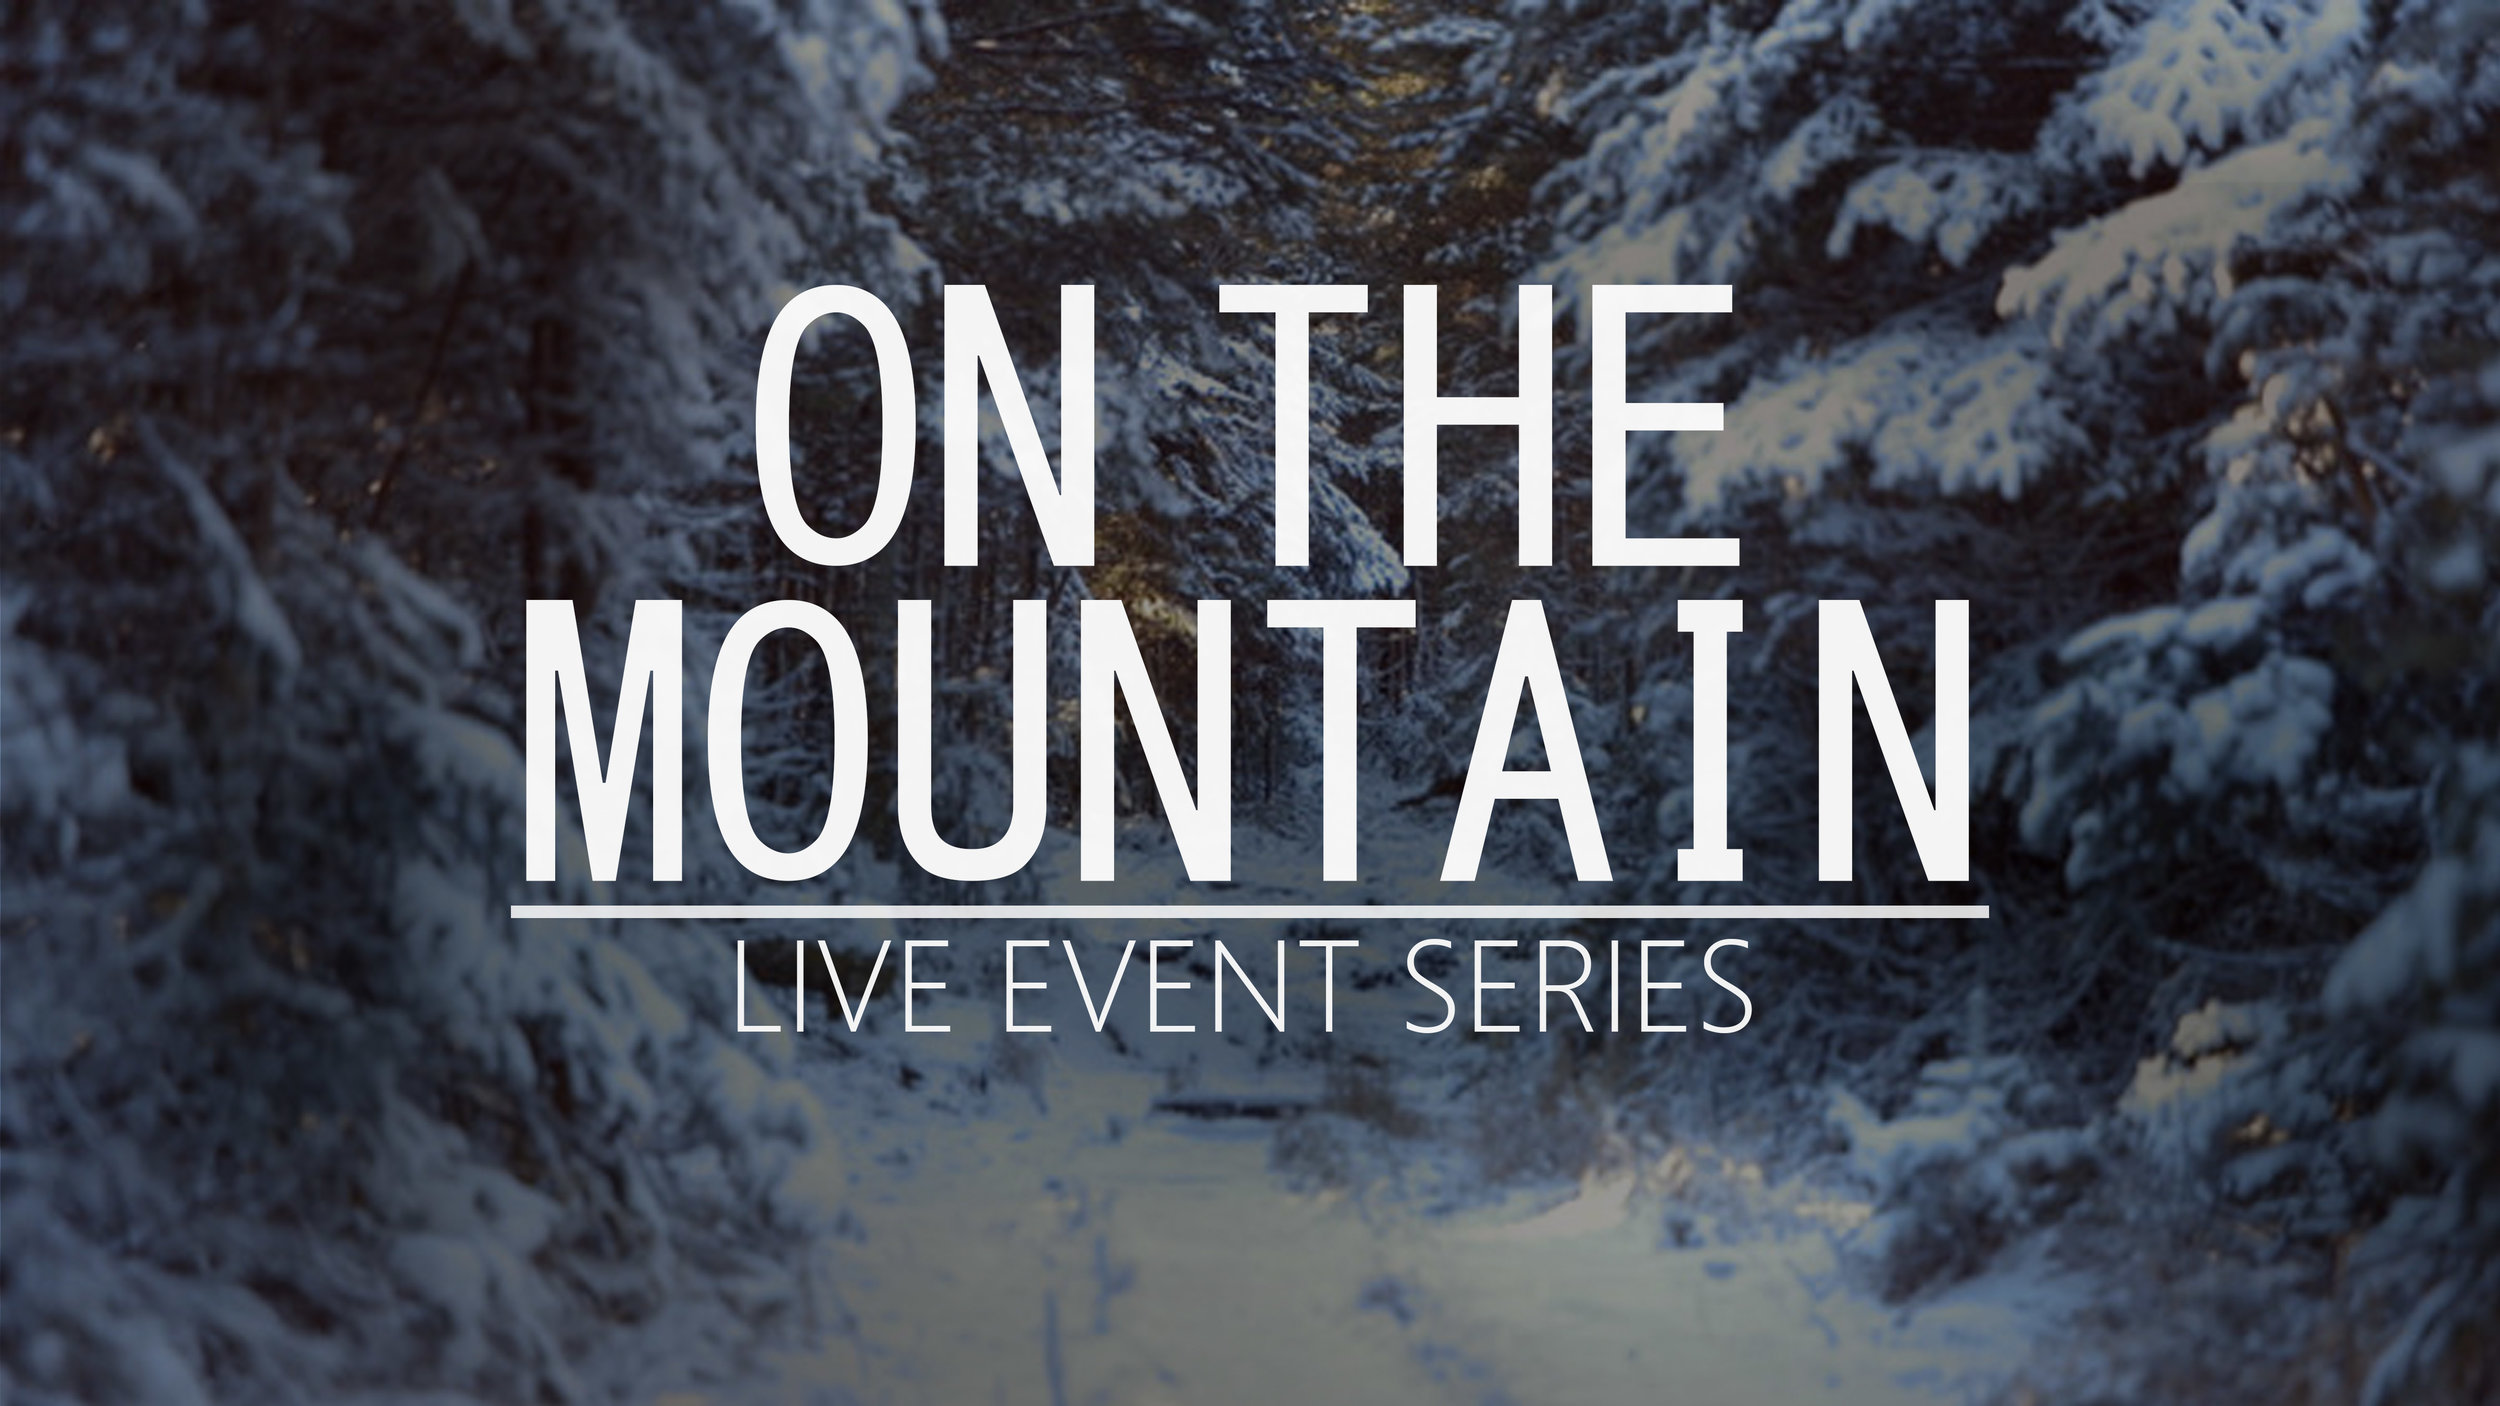 On the Mountain - Live Event Series